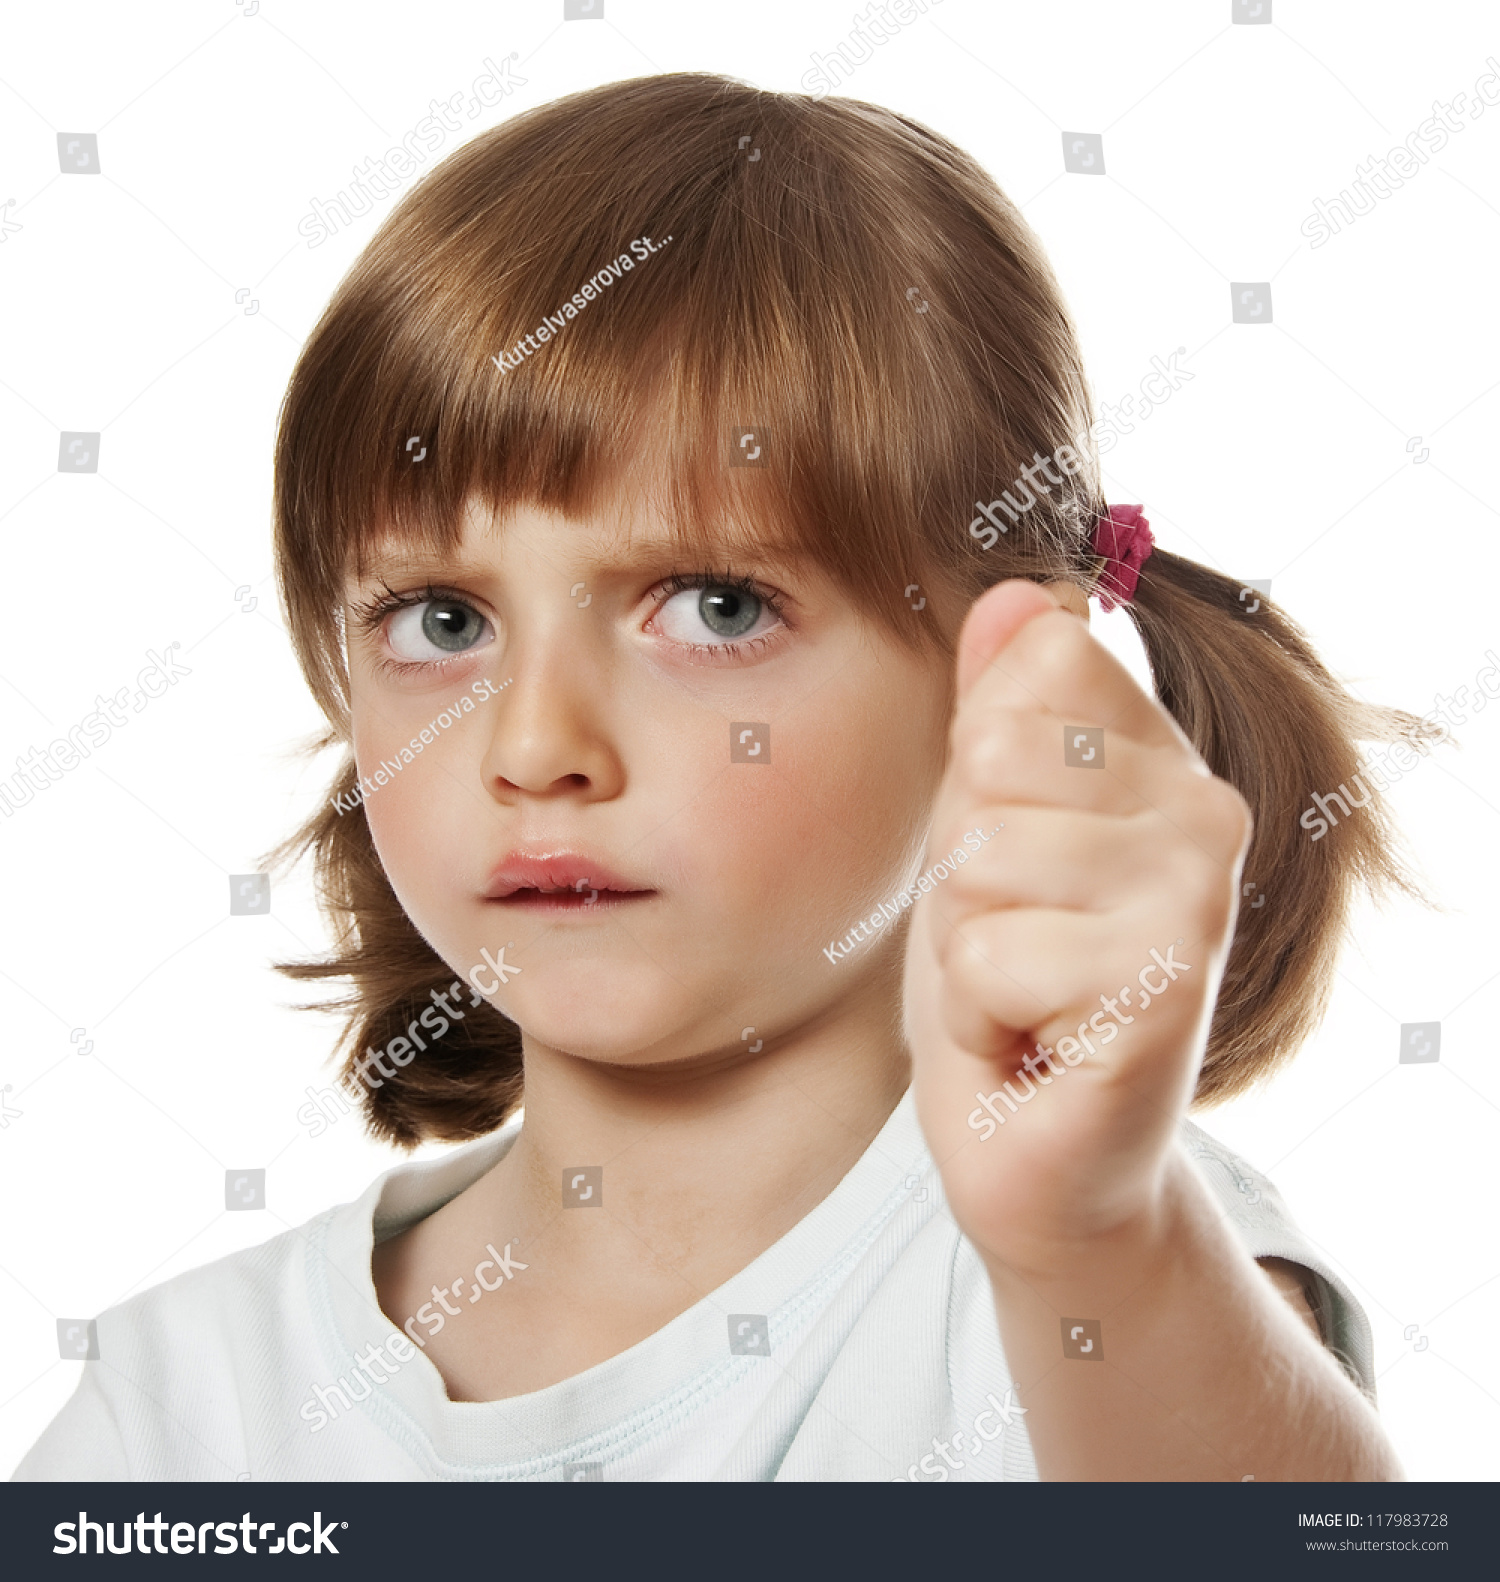 An Angry Little Girl Stock Photo 117983728 : Shutterstock